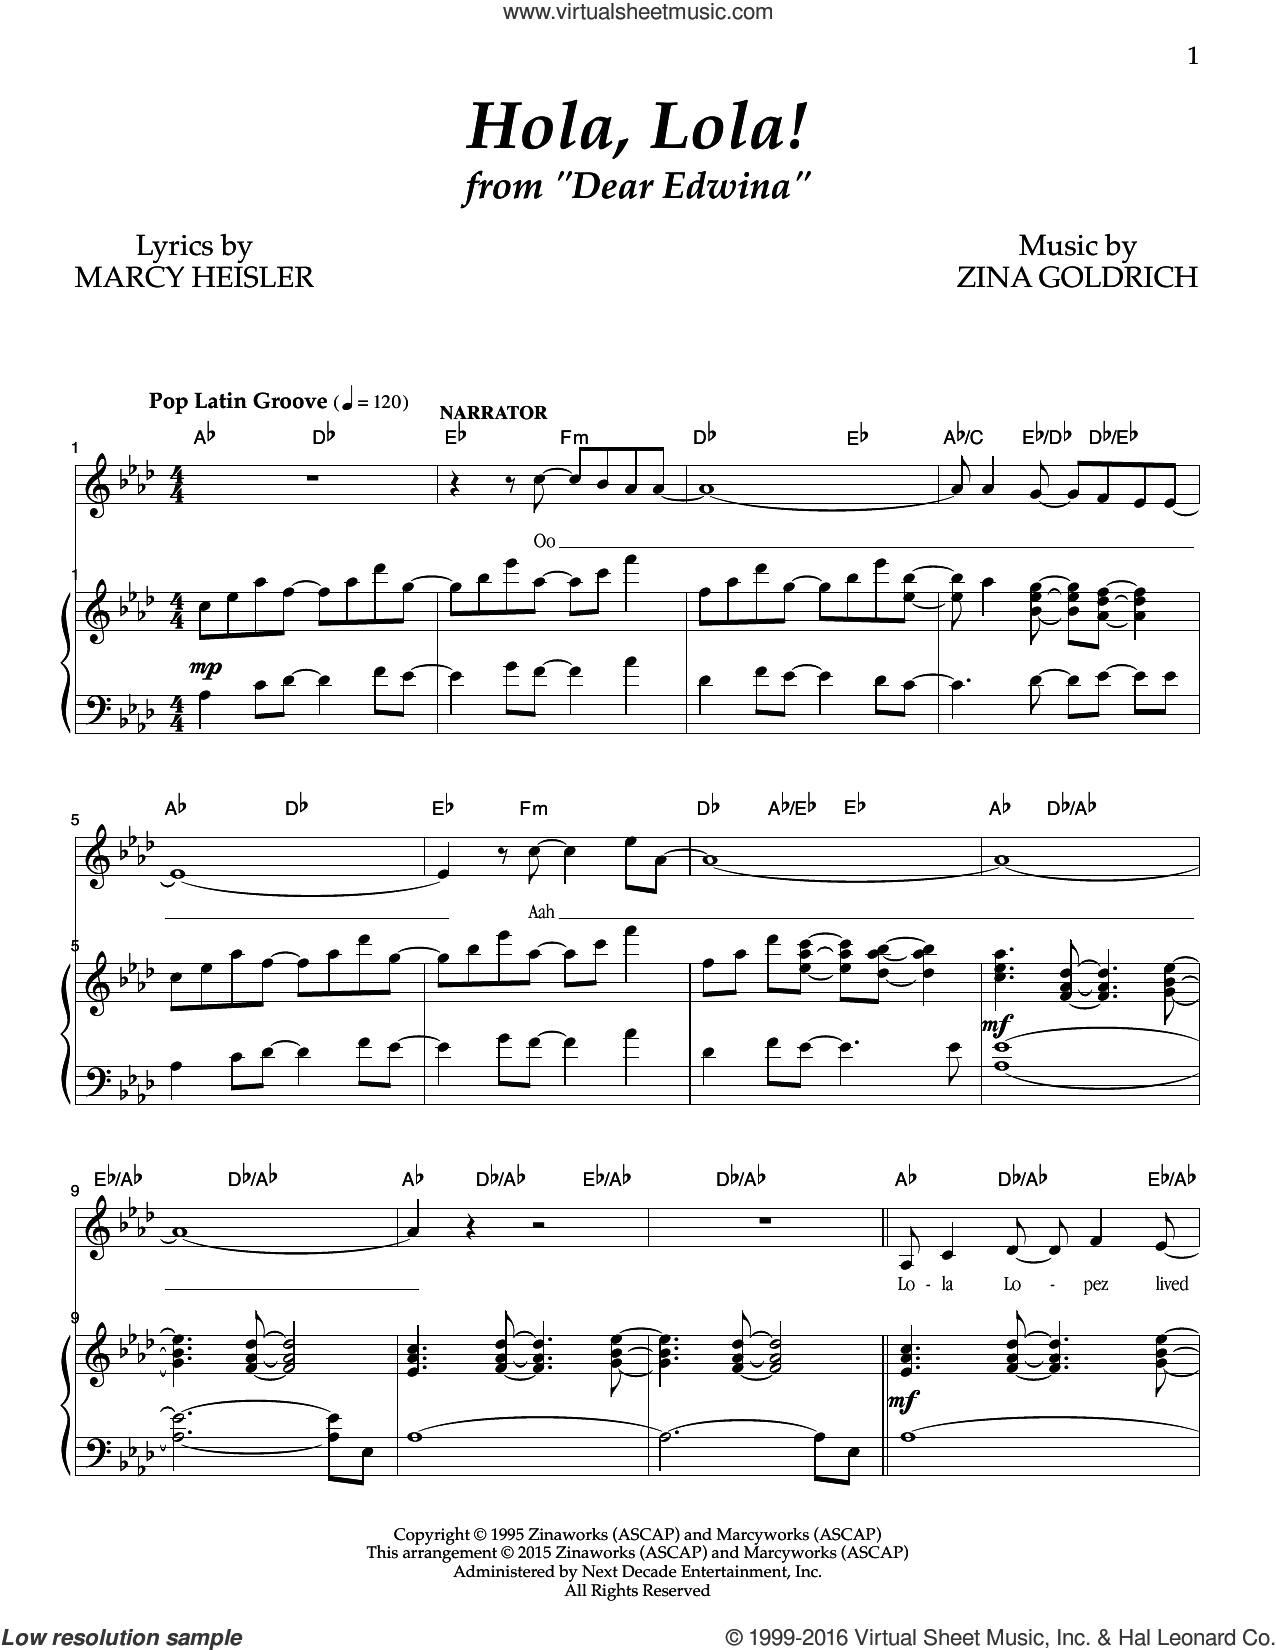 Hola, Lola! sheet music for voice and piano by Zina Goldrich